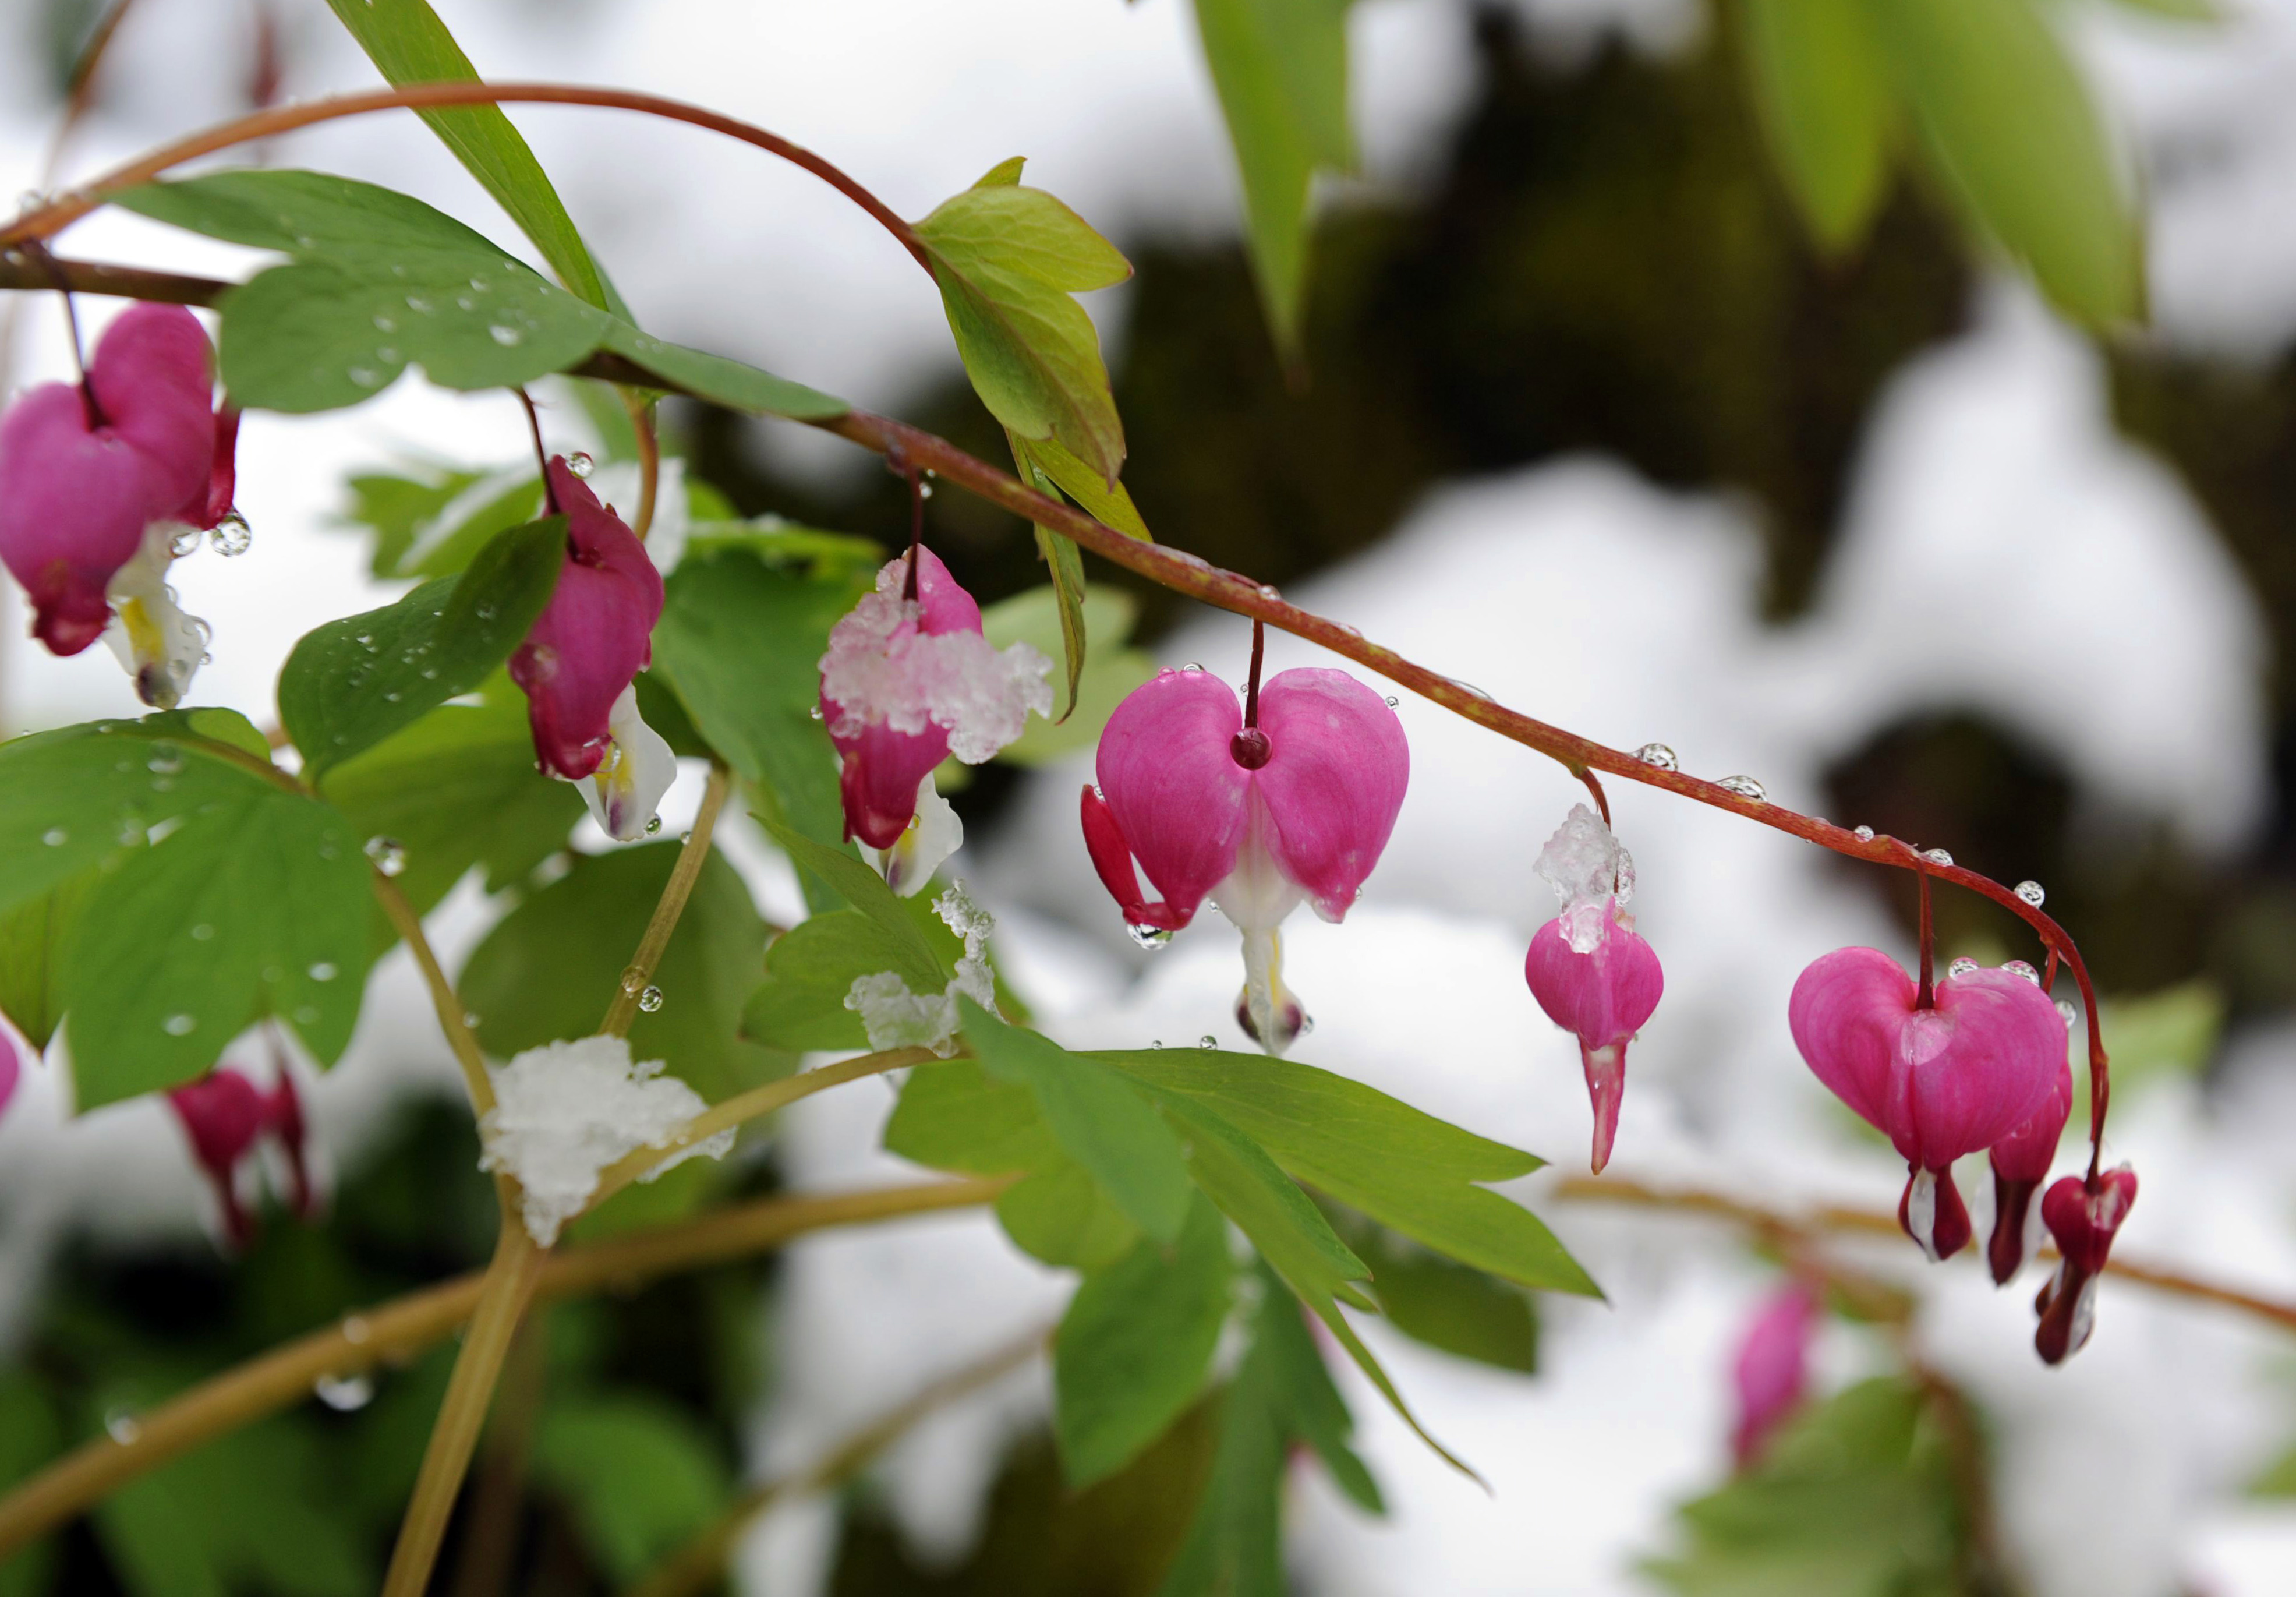 bleeding heart flowers covered in frosty ice